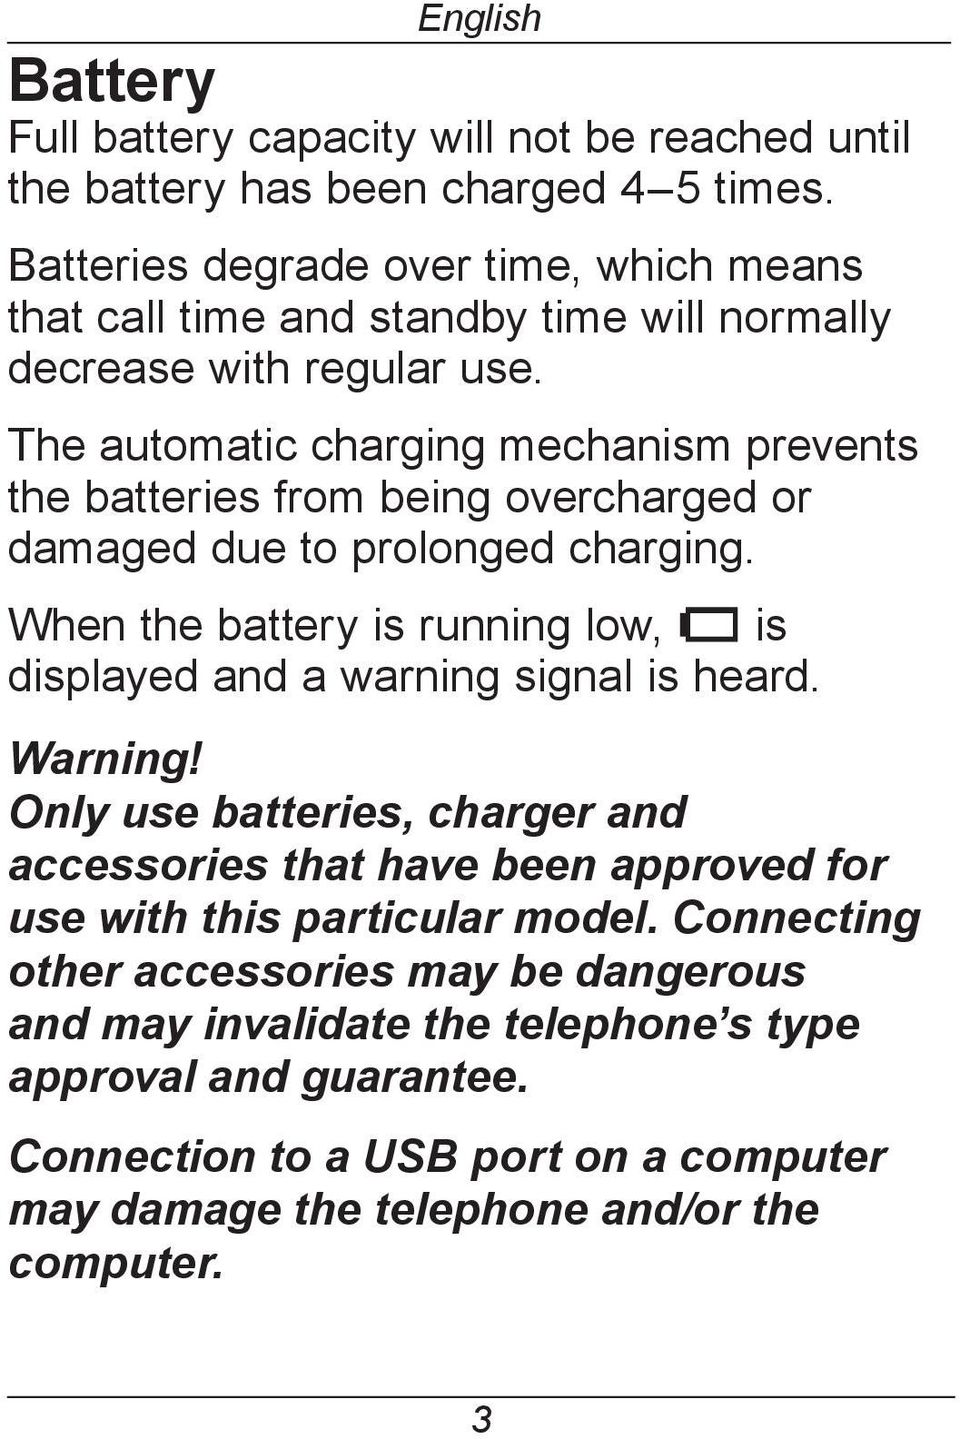 The automatic charging mechanism prevents the batteries from being overcharged or damaged due to prolonged charging.